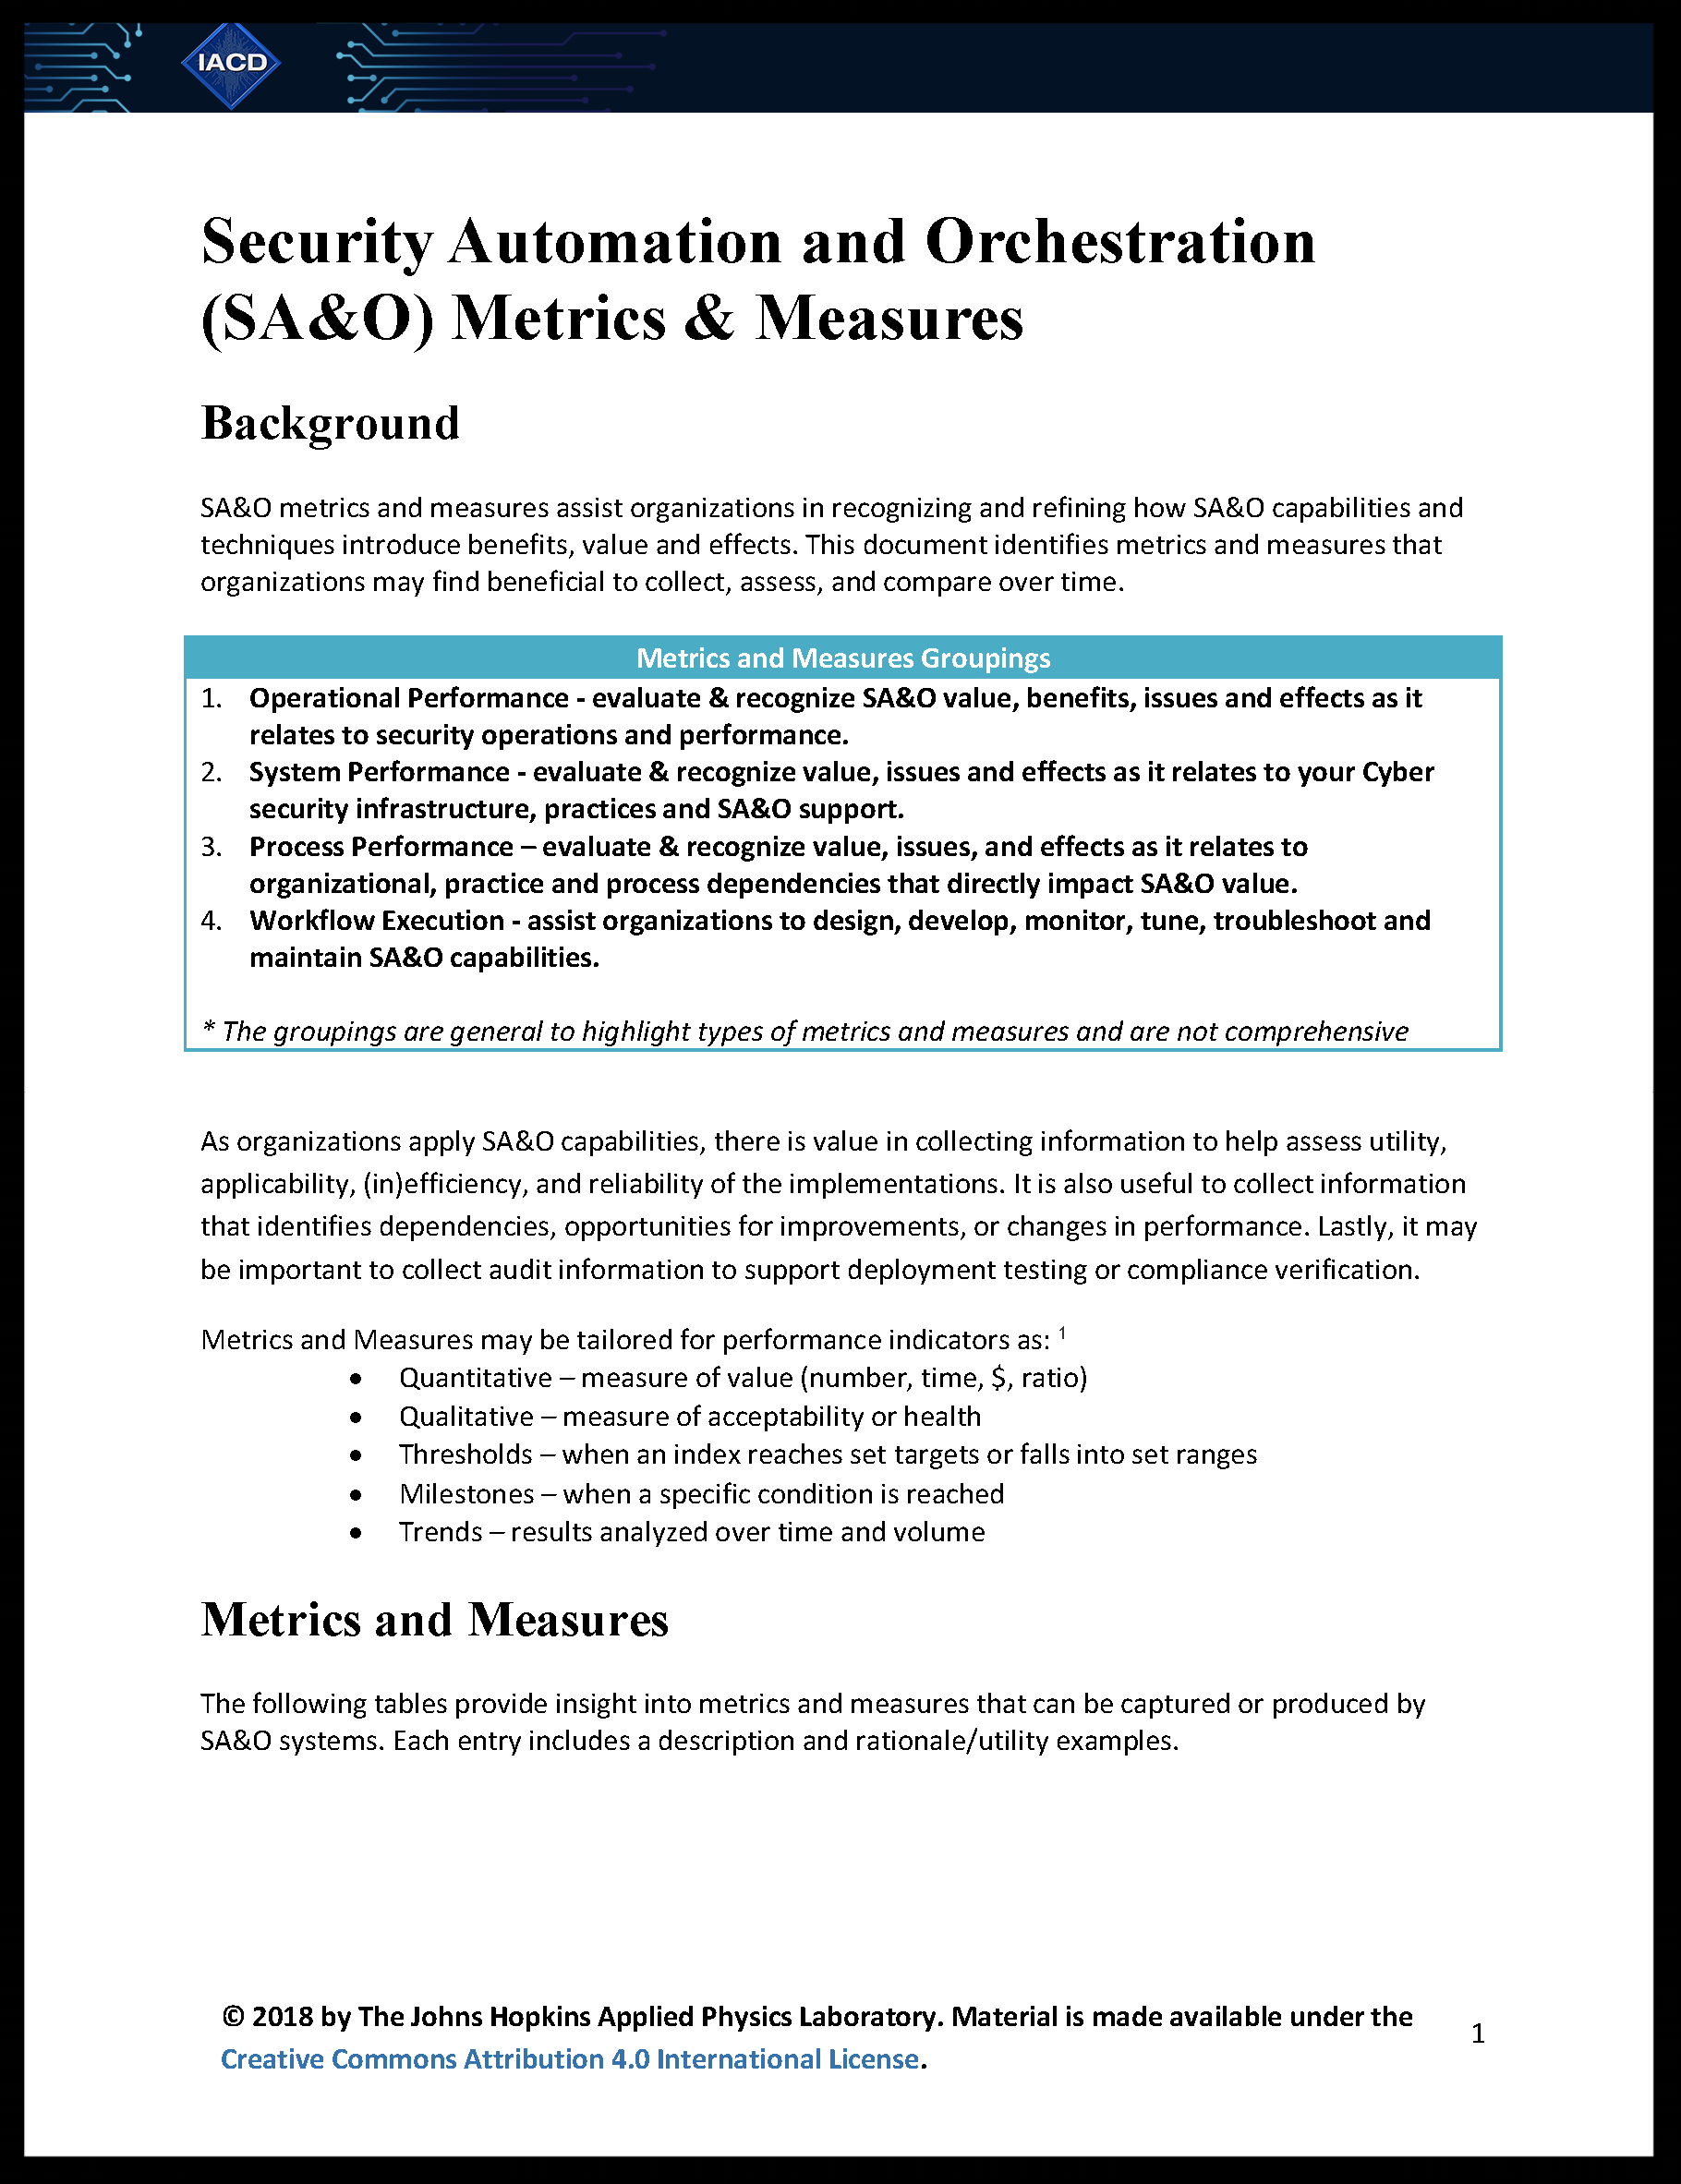 Security Automation & Orchestration (SA&O) Metrics & Measures